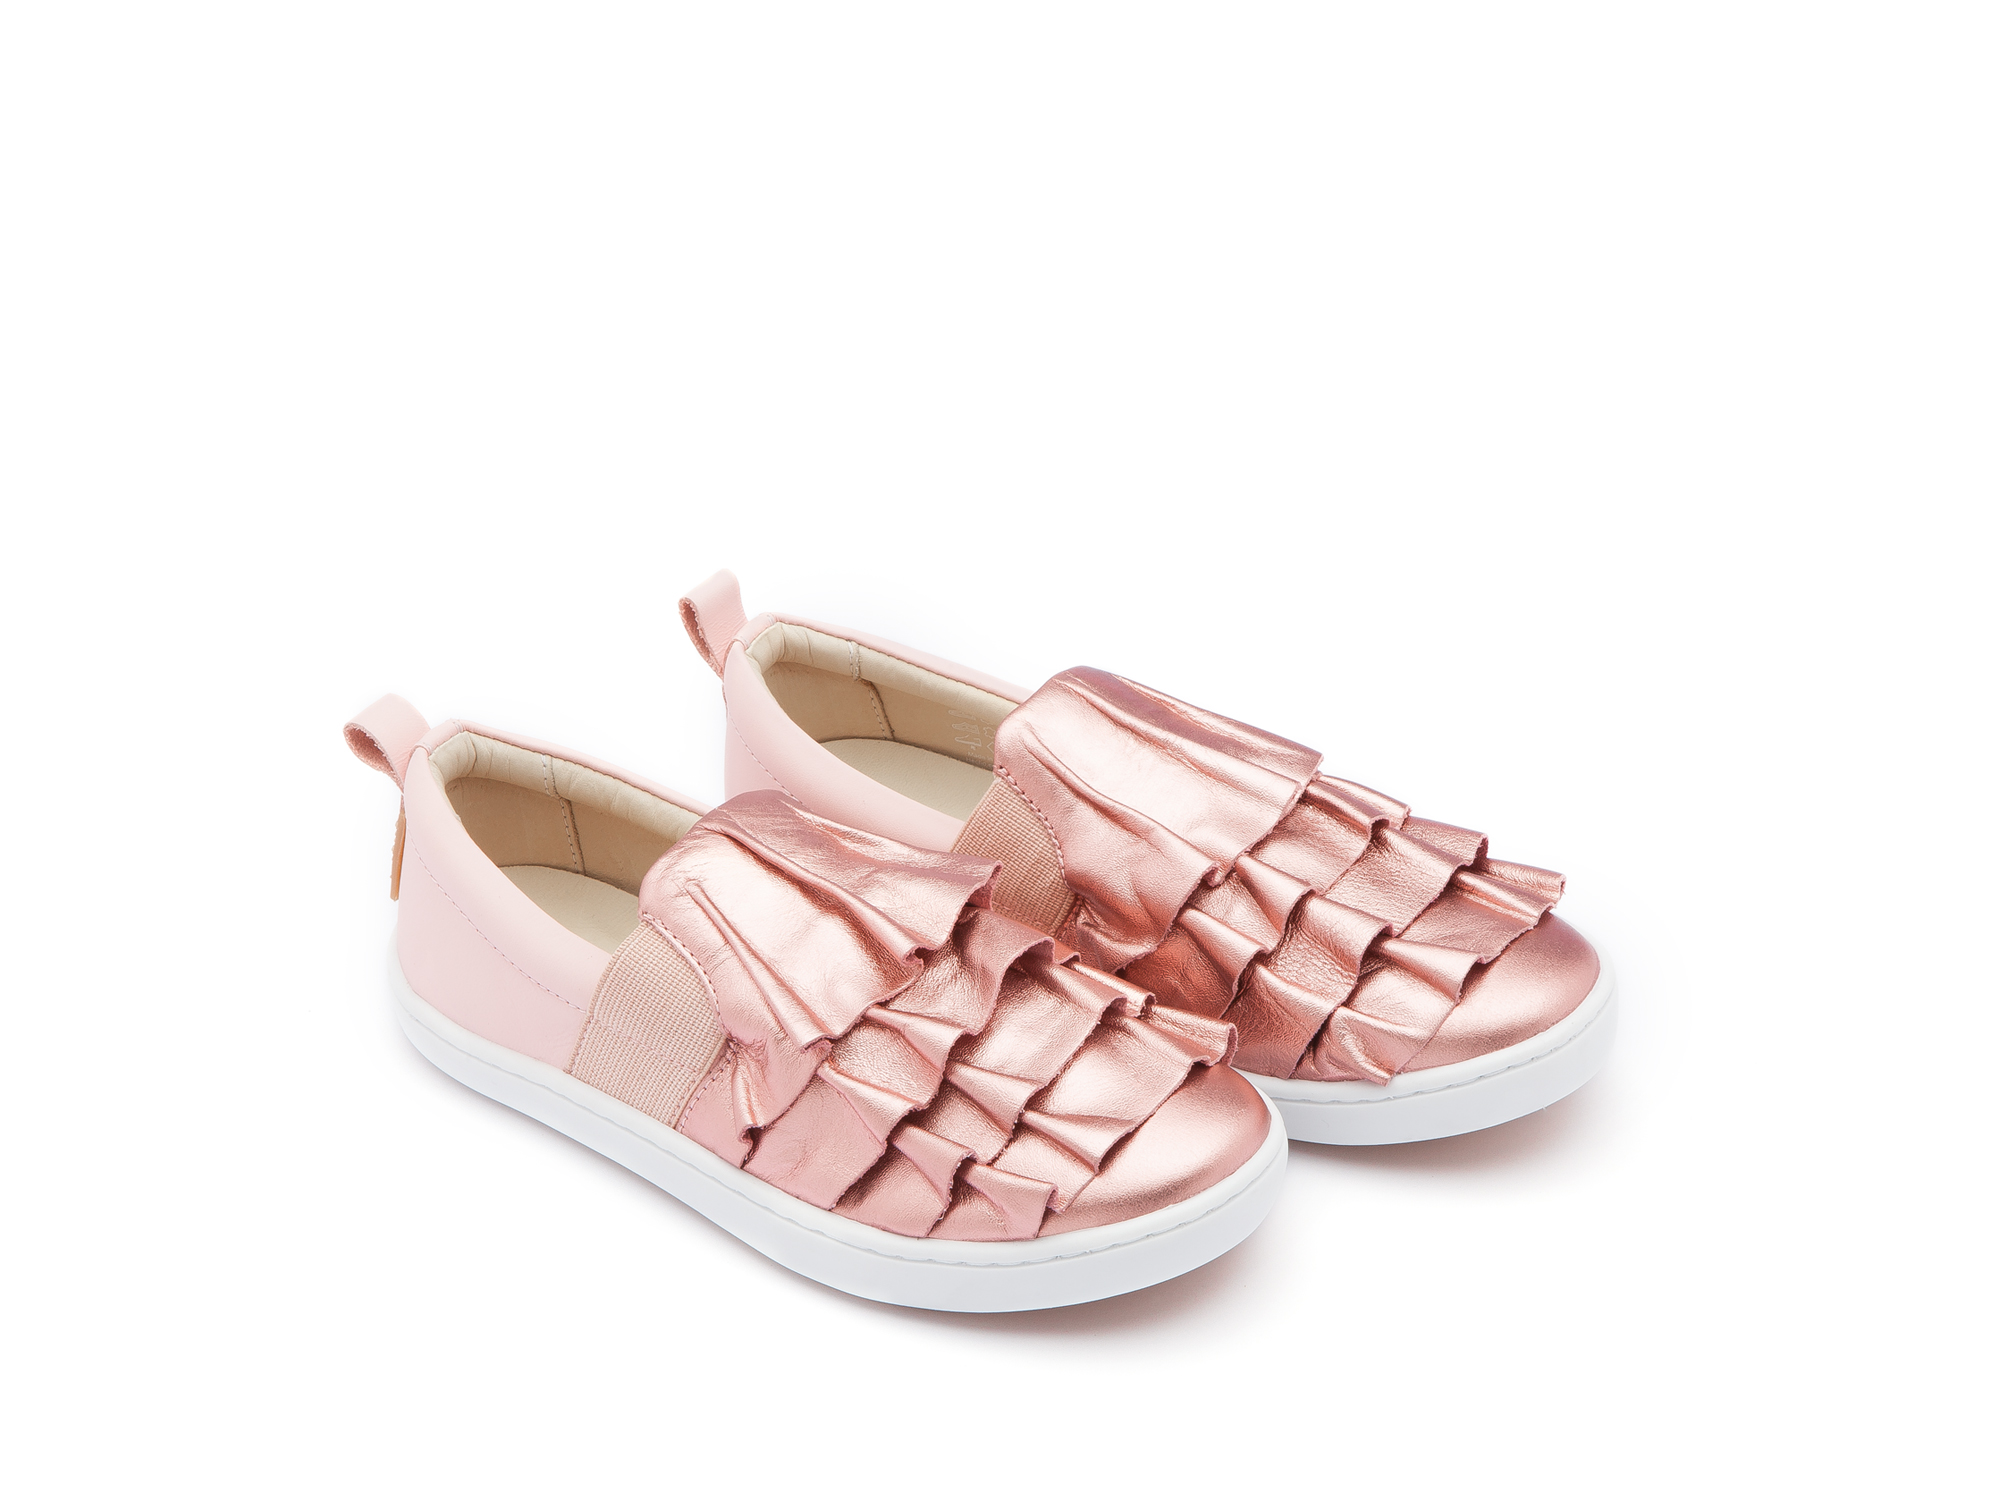 Tênis Flamenco Rose Gold/ Blossom Pink Junior 4 à 8 anos - 0